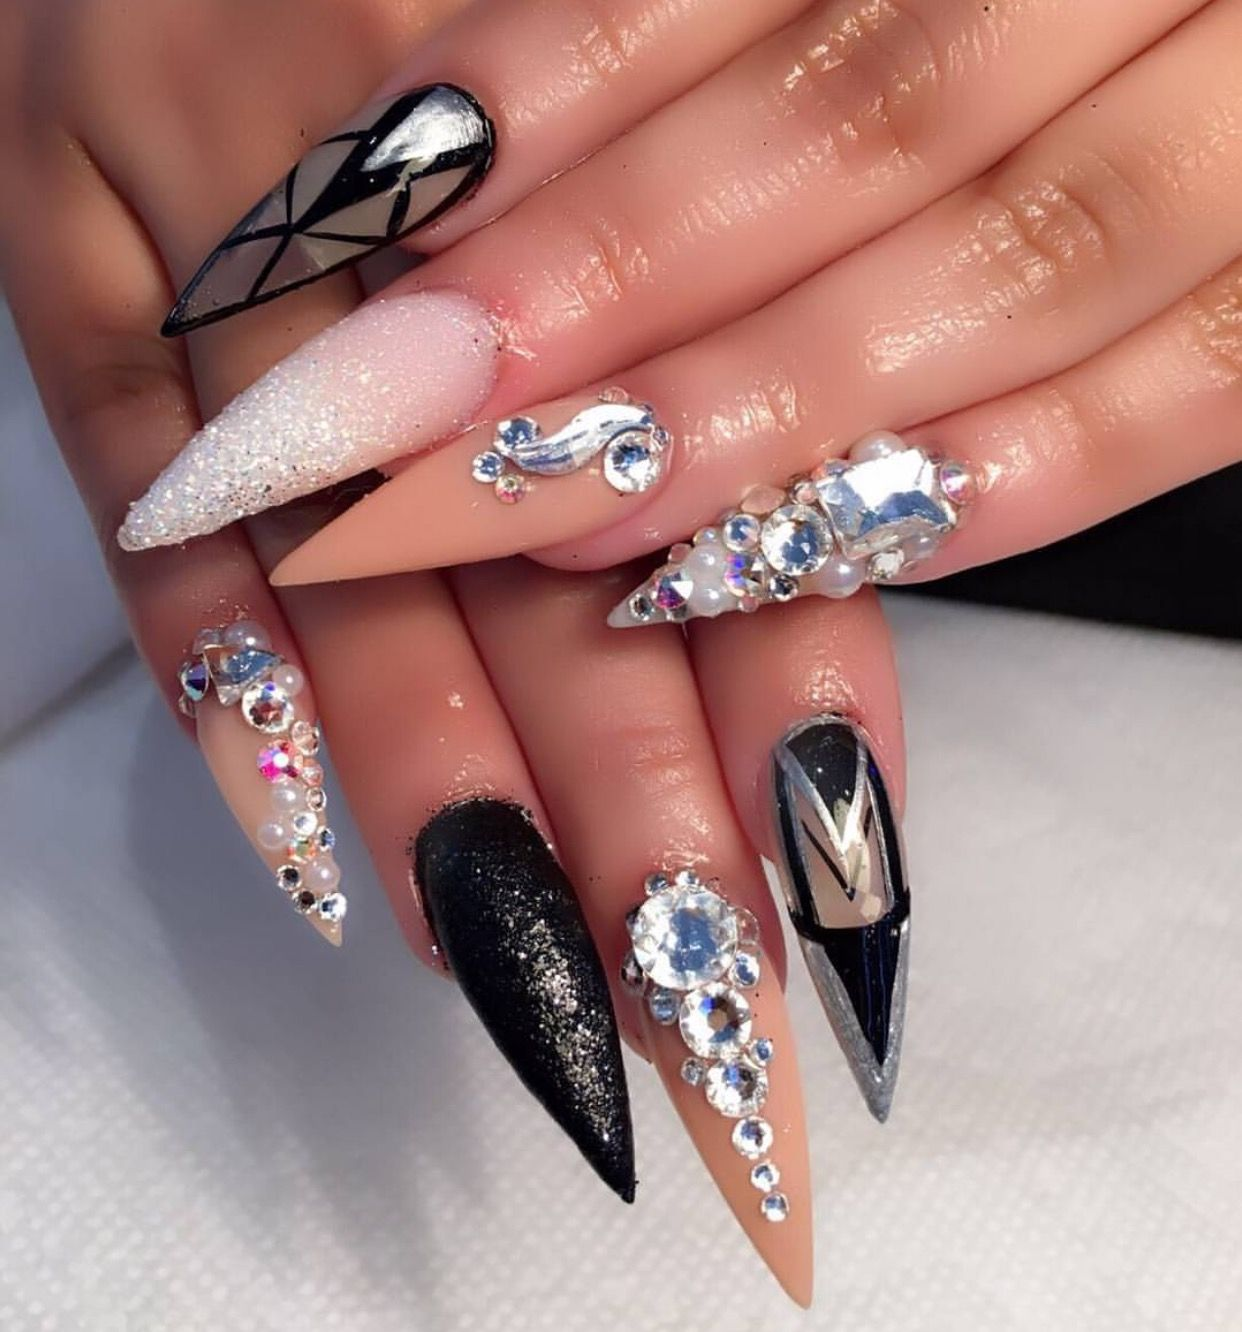 Pin by Kourtney Jones on Nails | Pinterest | Nail nail, Claw nails ...